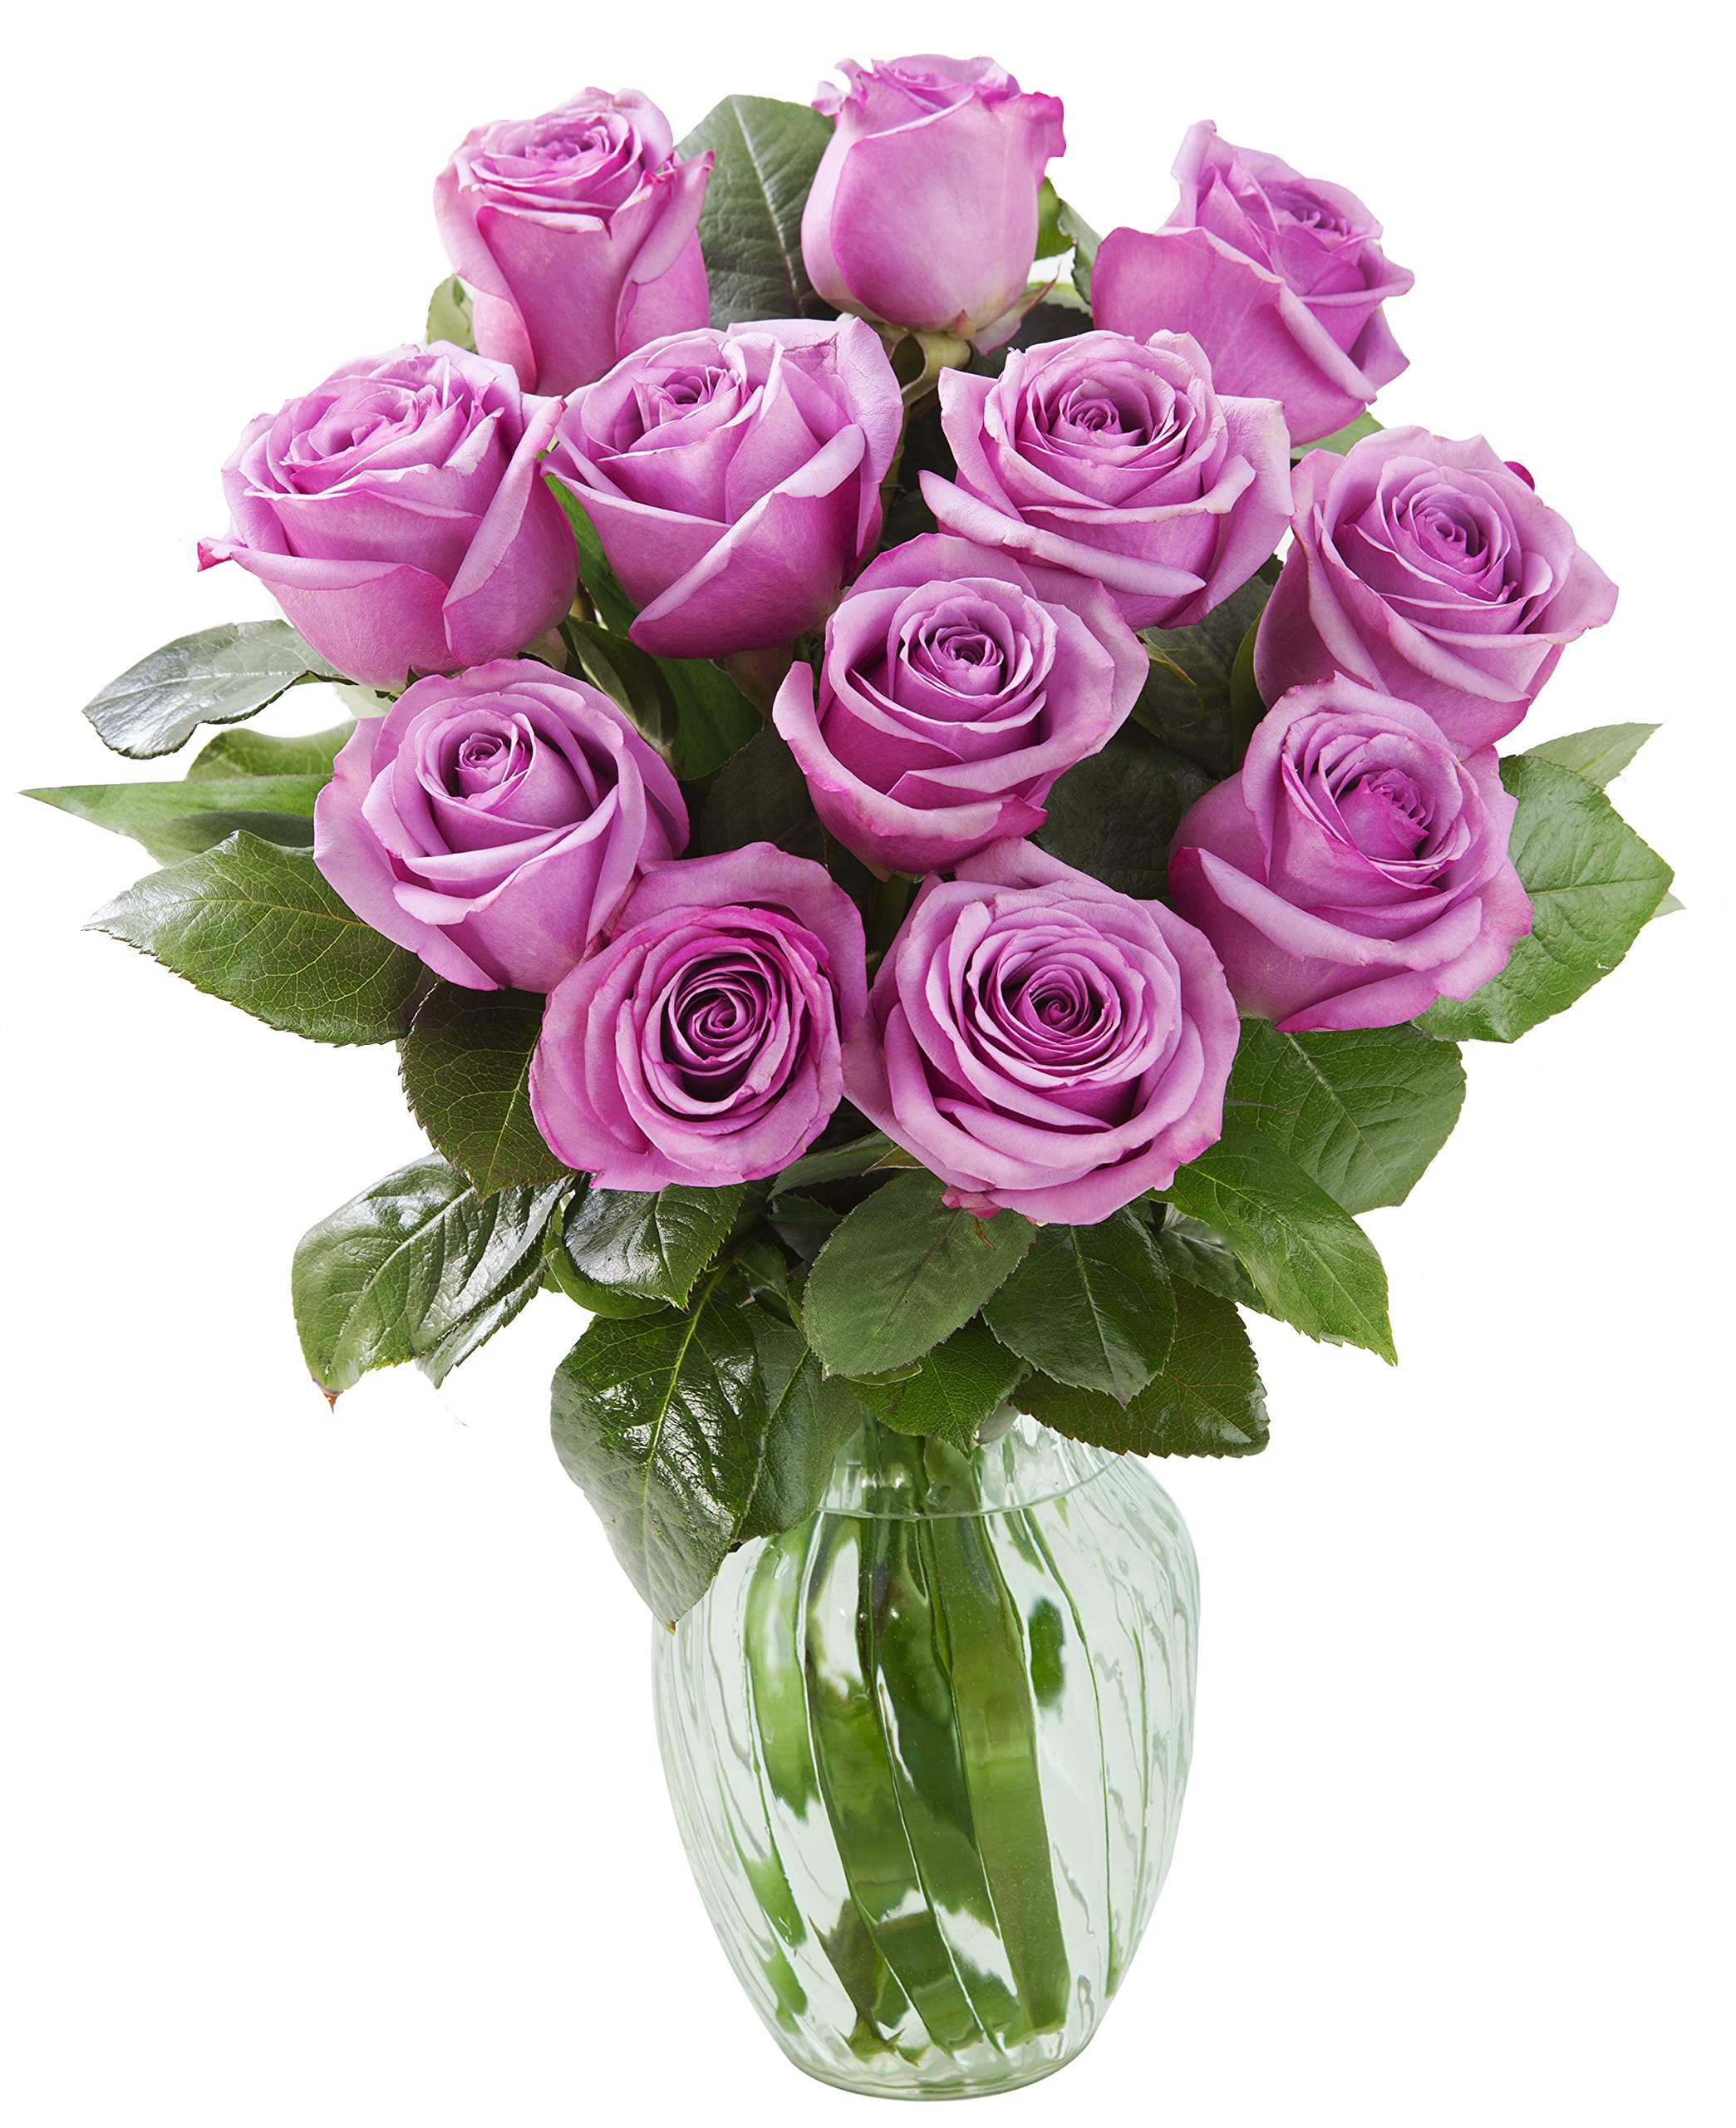 Bouquet of 12 Fresh Cut Purple Roses (Farm-Fresh, Long-Stem) with Free Vase Included